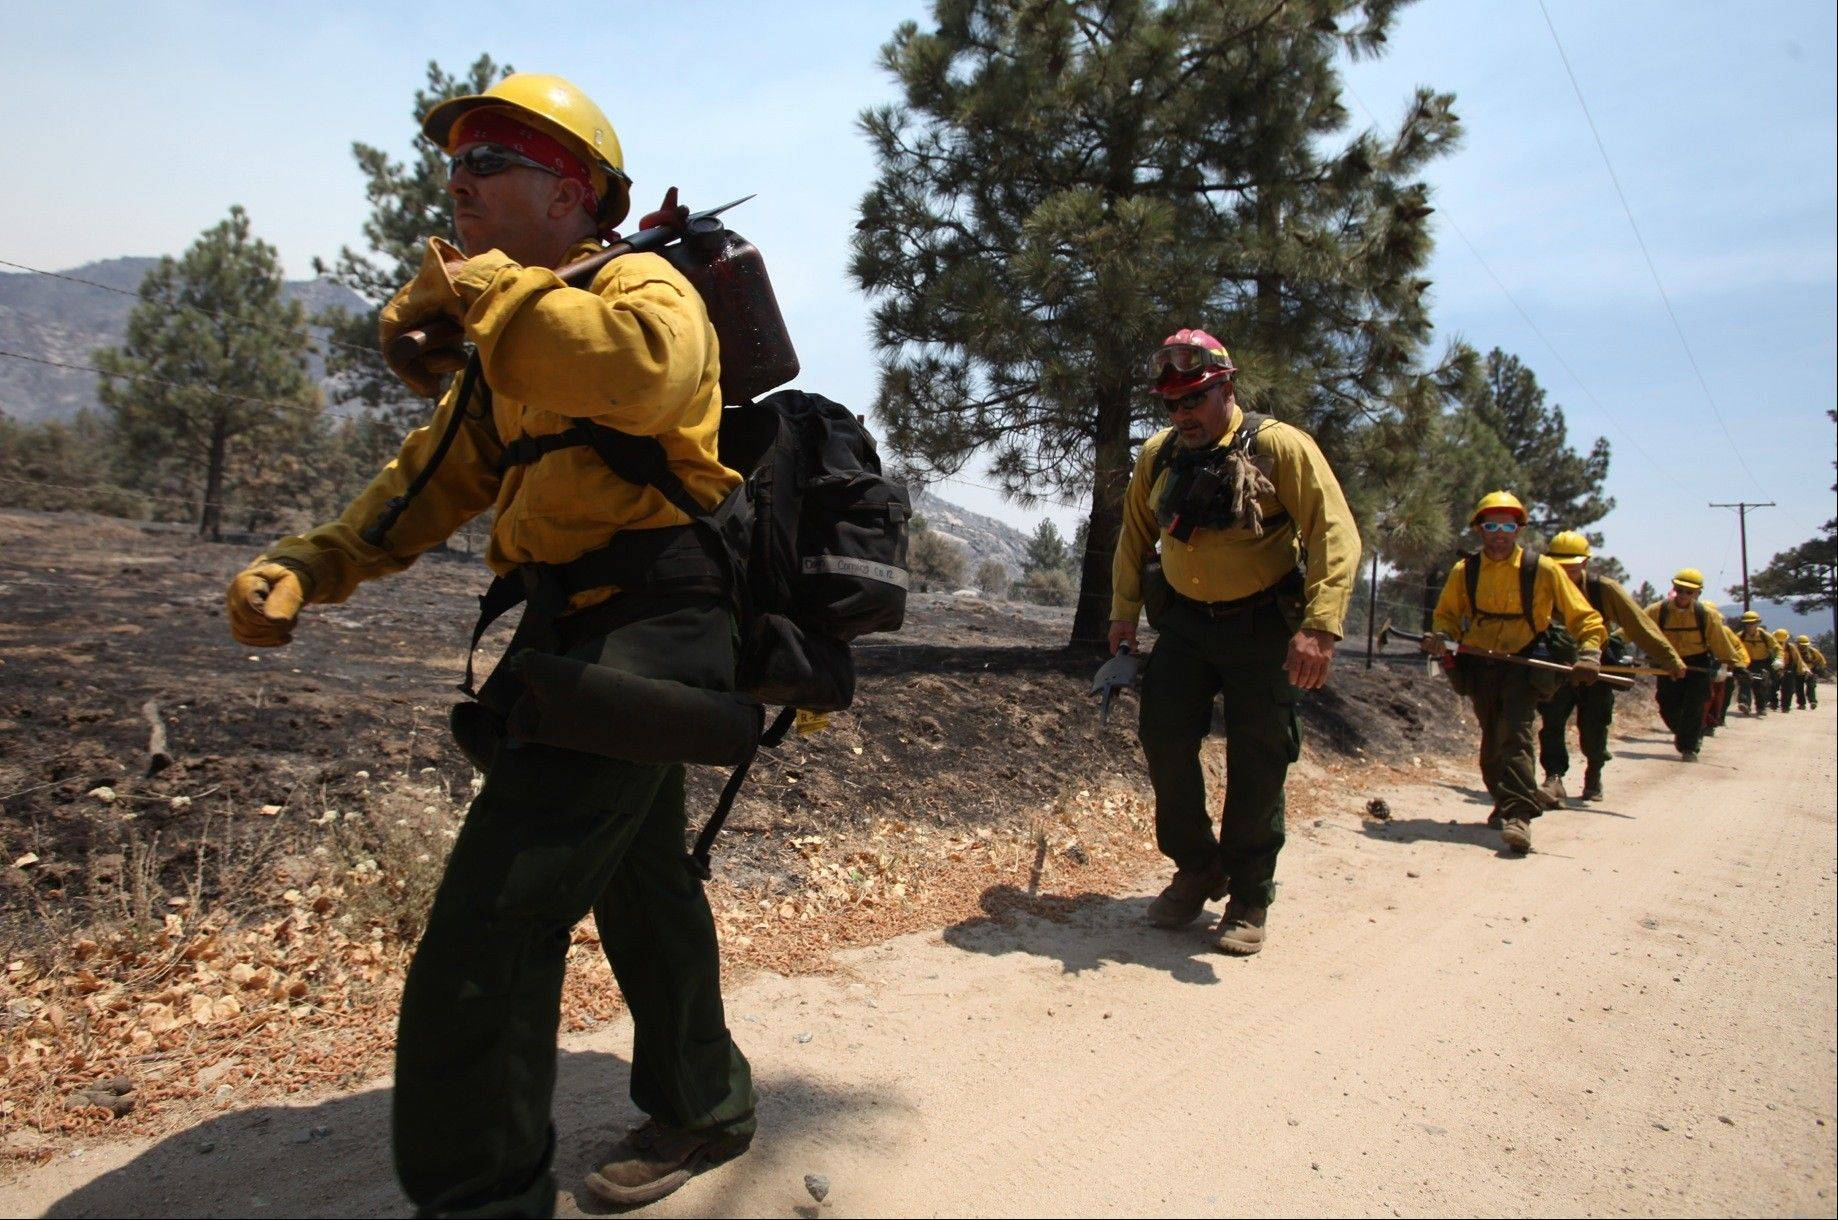 Members of the Mountaineer Fire Crews from Northern California start their hike near Pine Springs Ranch in Mountain Center, Calif. to fight the Mountain Fire Thursday, July 18, 2013.